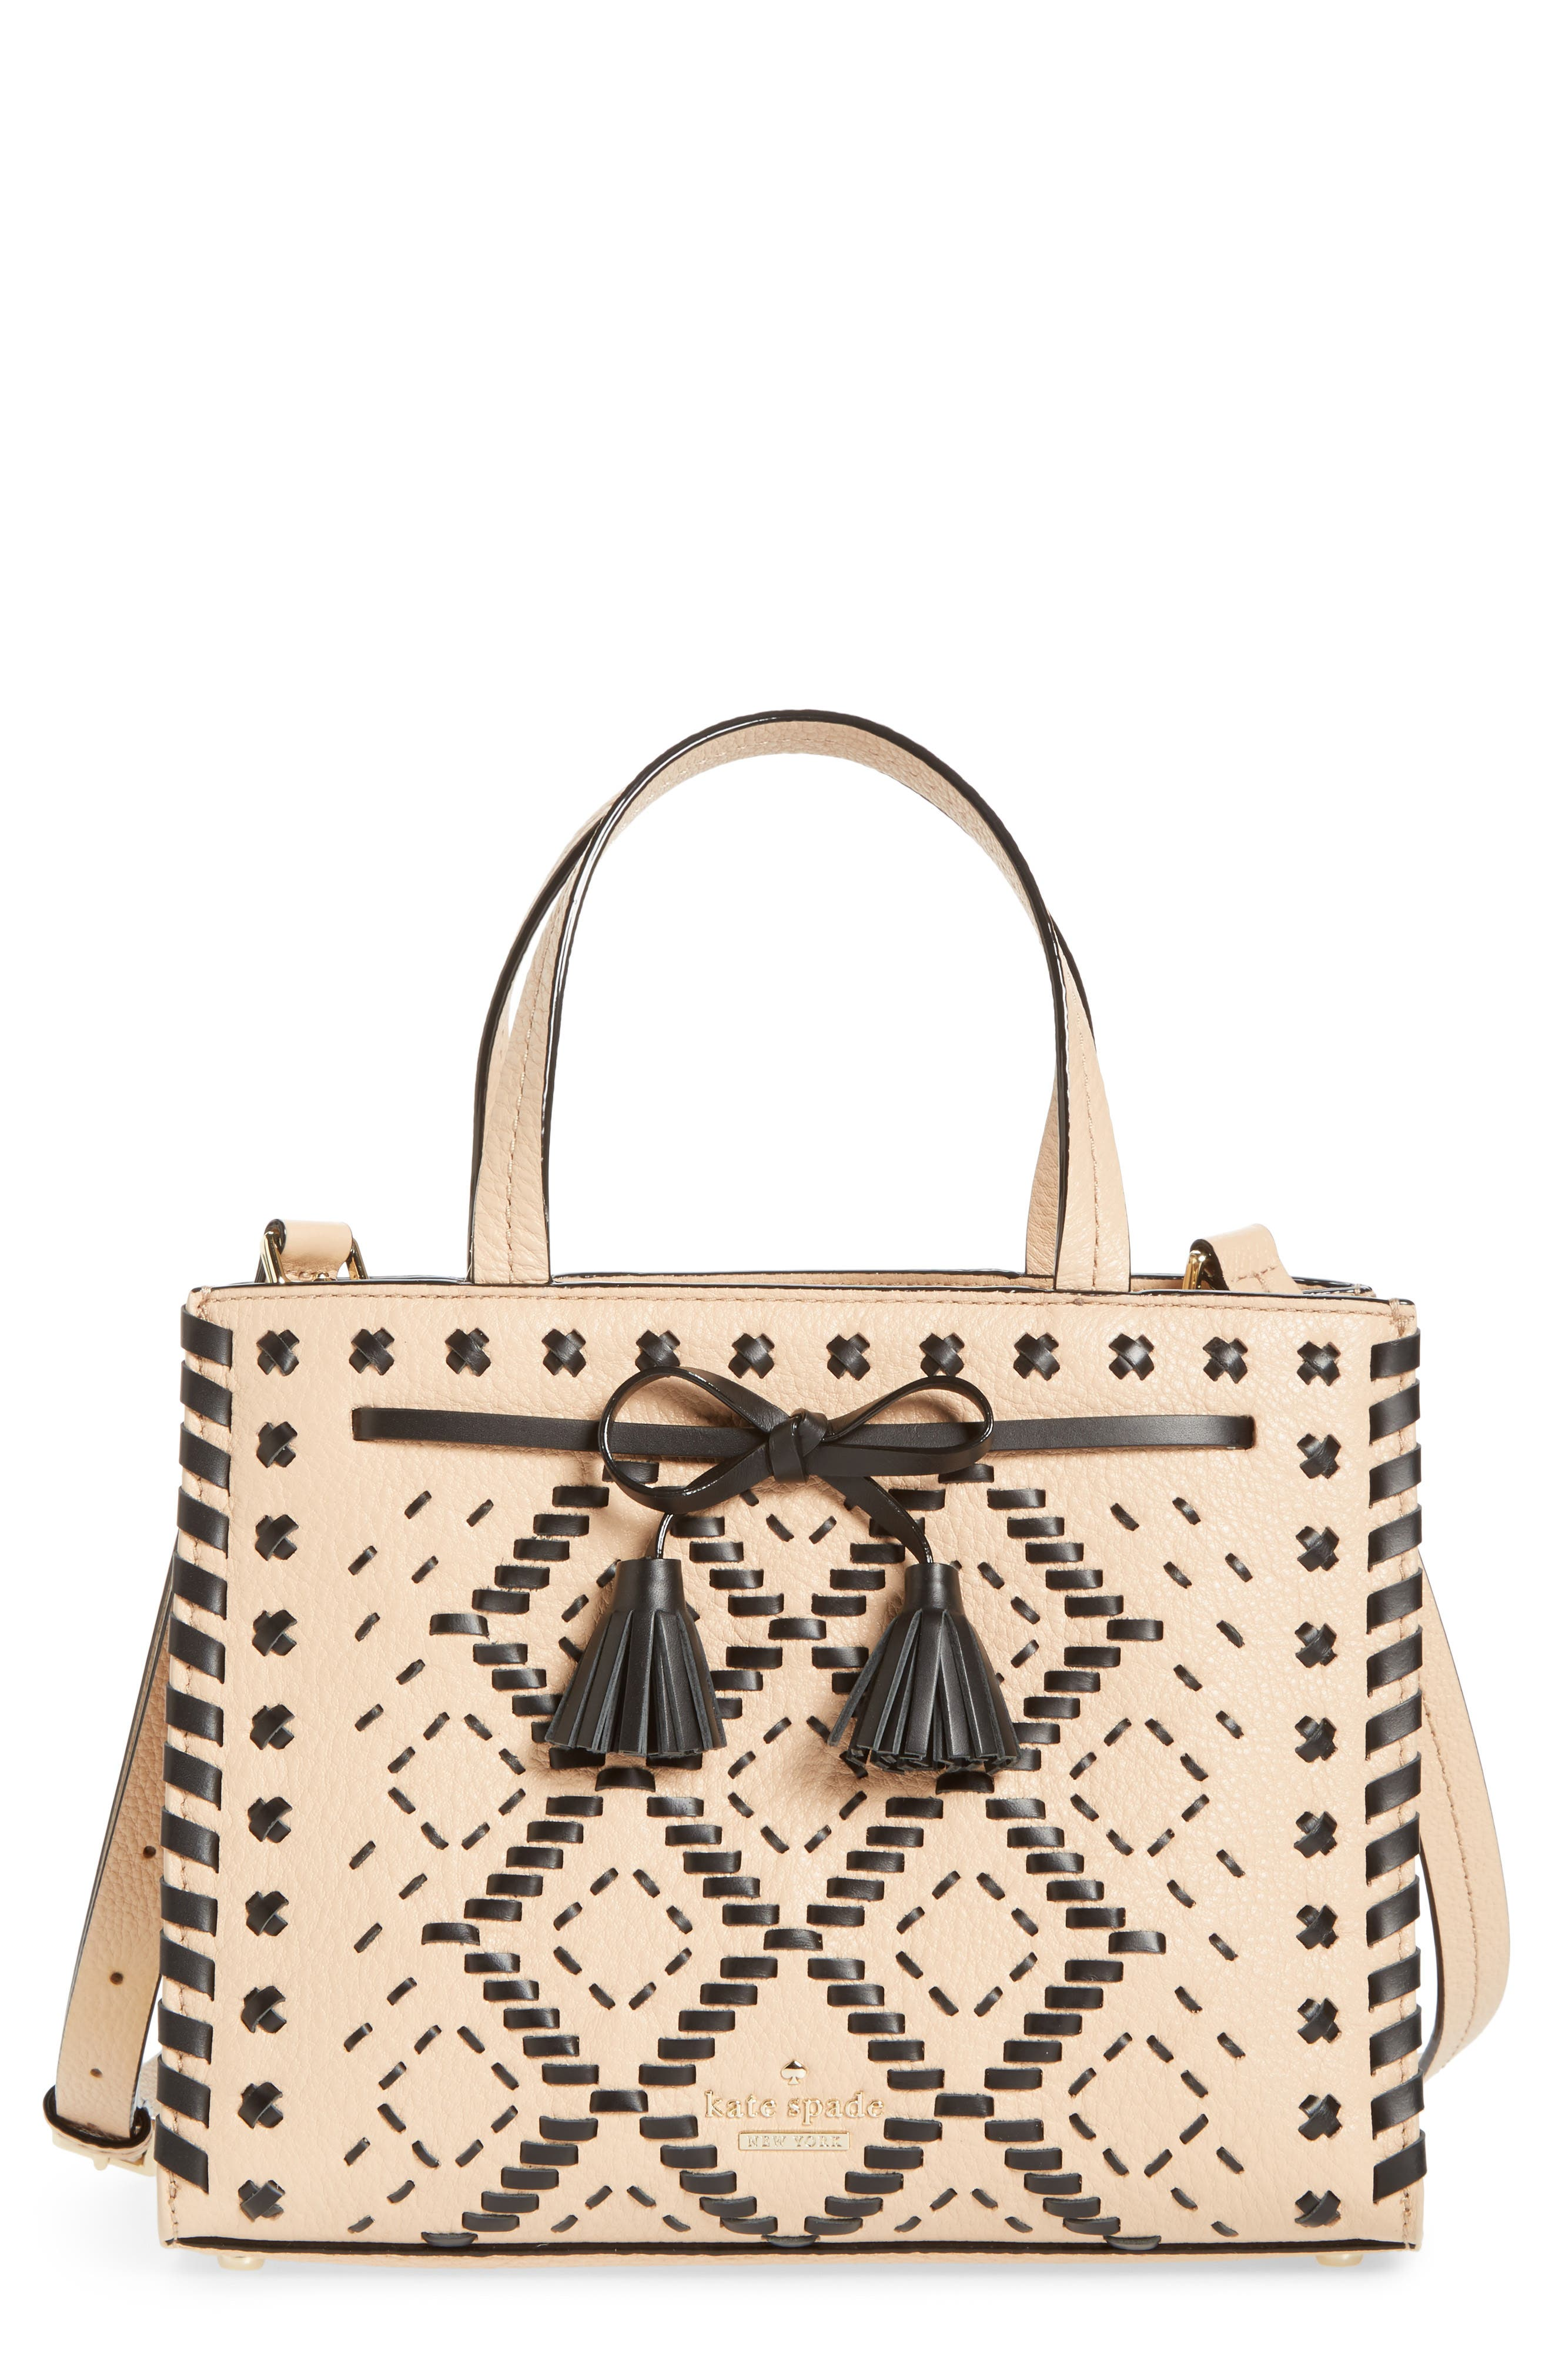 KATE SPADE NEW YORK,                             woven small hayes street - isobel leather satchel,                             Main thumbnail 1, color,                             250